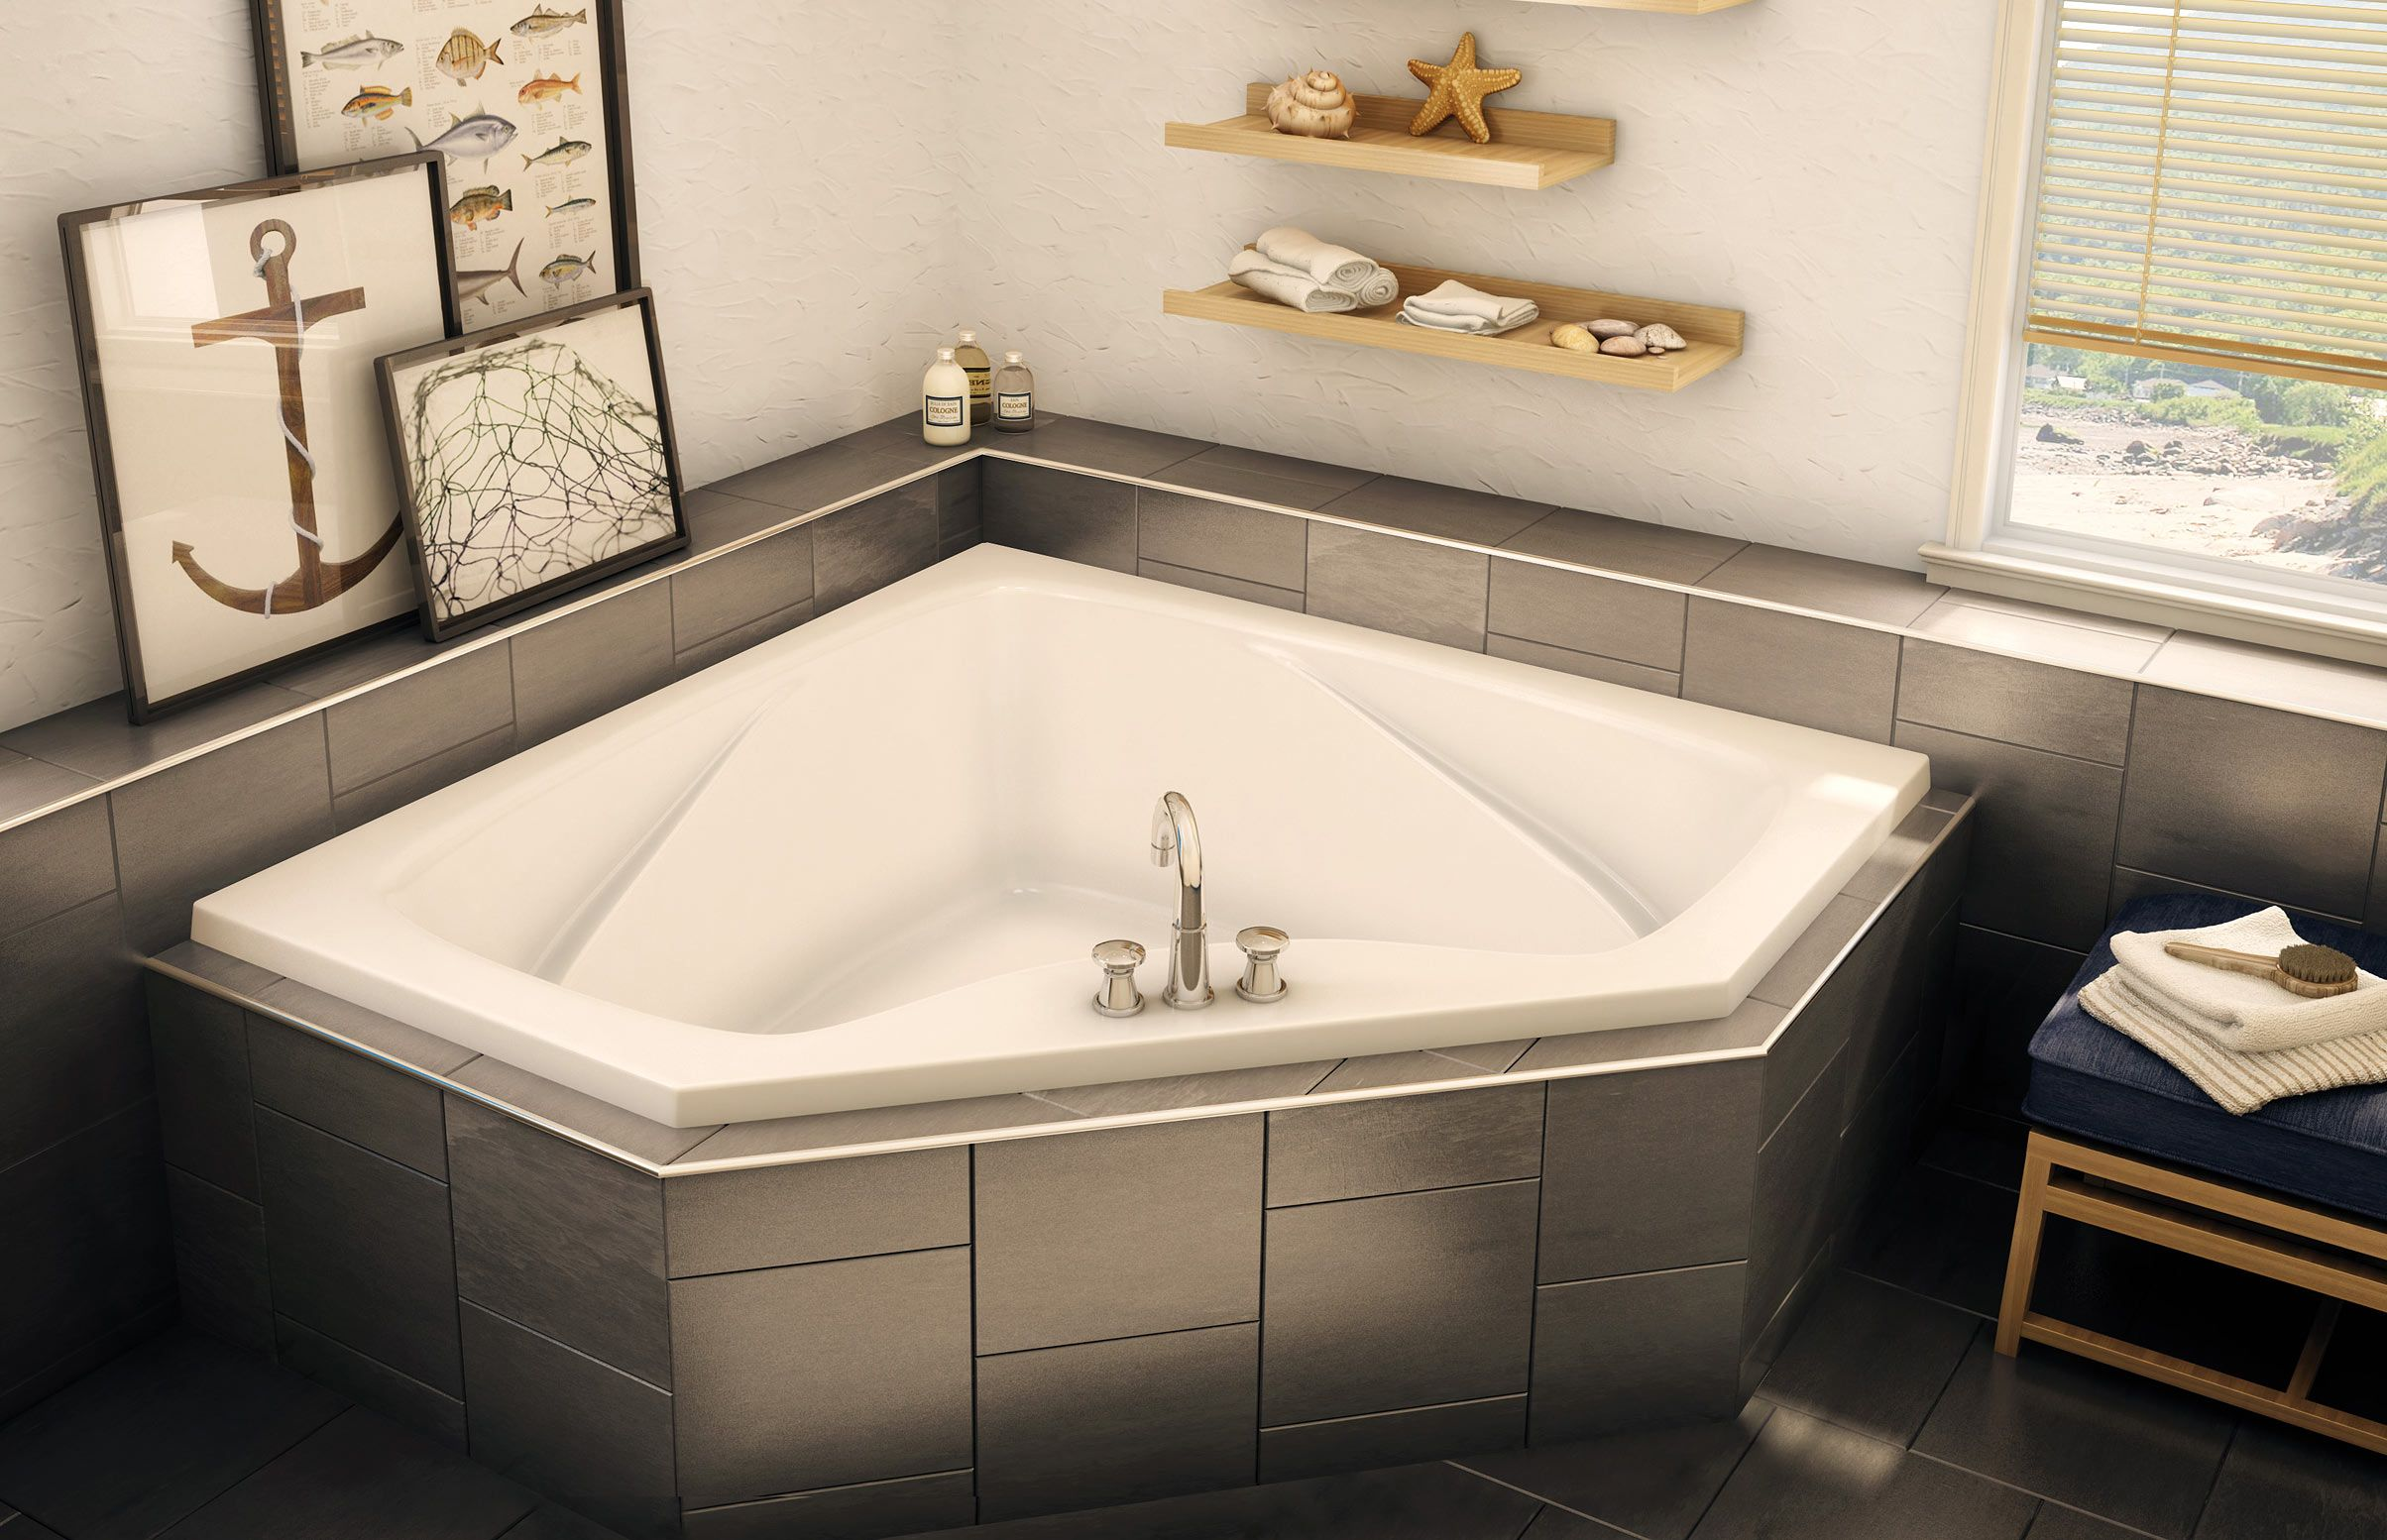 CTF2-6060 Corner or Drop-in bathtub - Aker by MAAX | Aker By MAAX ...